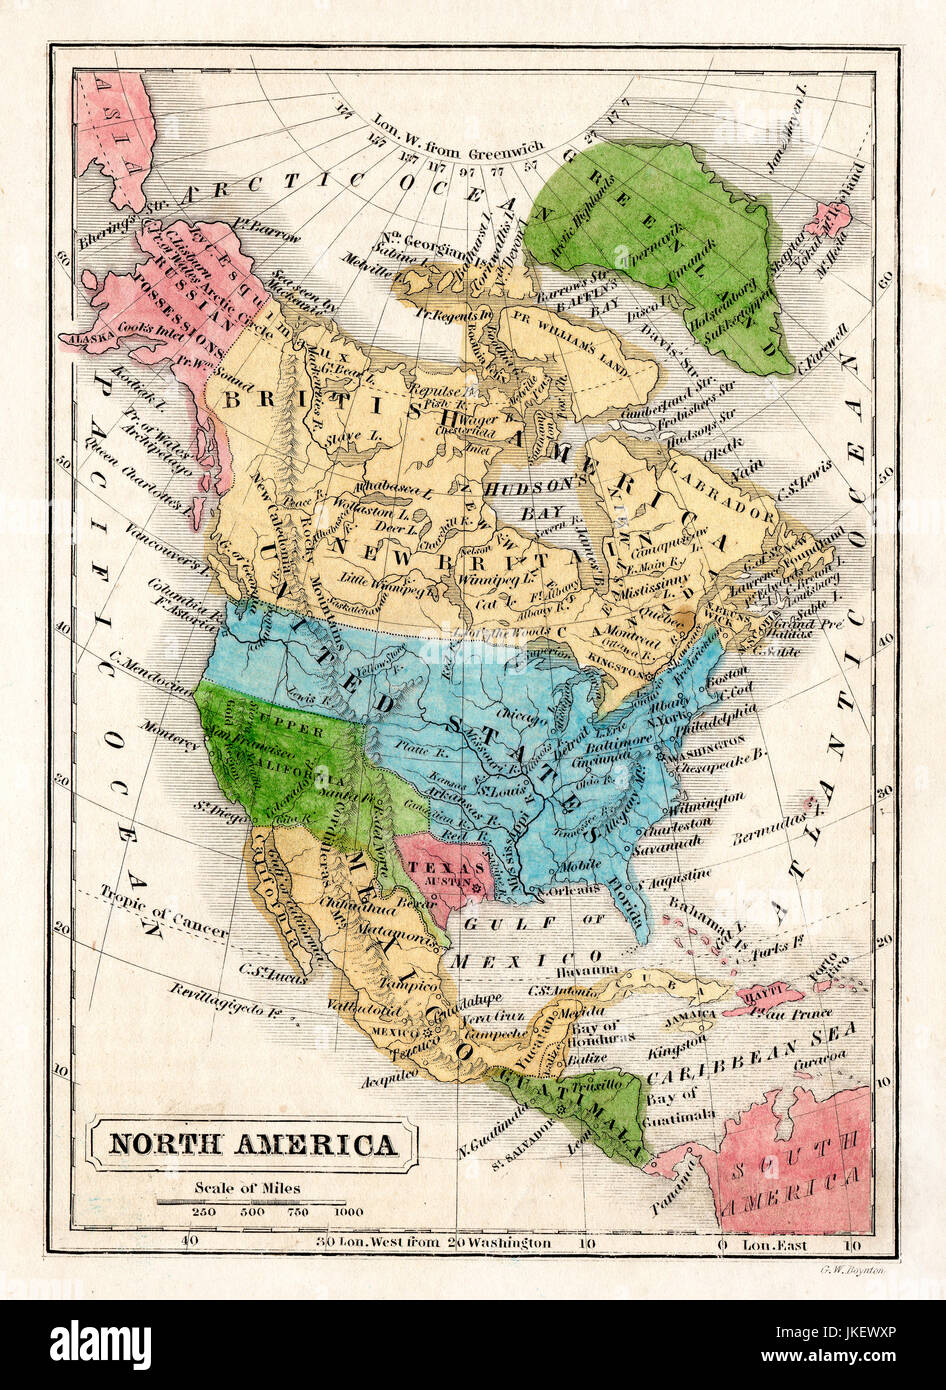 1845 Boynton Map of the North America showing the Republic ... on united states map bodies of water, united states map 1860, united states map southeast usa, united states canada mexico, united states map 1800, united states map 1836, united states map grade 1, united states map 1846, united states political map 2012, united states declares war on mexico, united states map 1865, united states map 1848, united states map 1820, united states map 1812, united states map 1823, united states map 1821, united states map 1830, united states political map with cities, united states map 1850, united states map 1847,